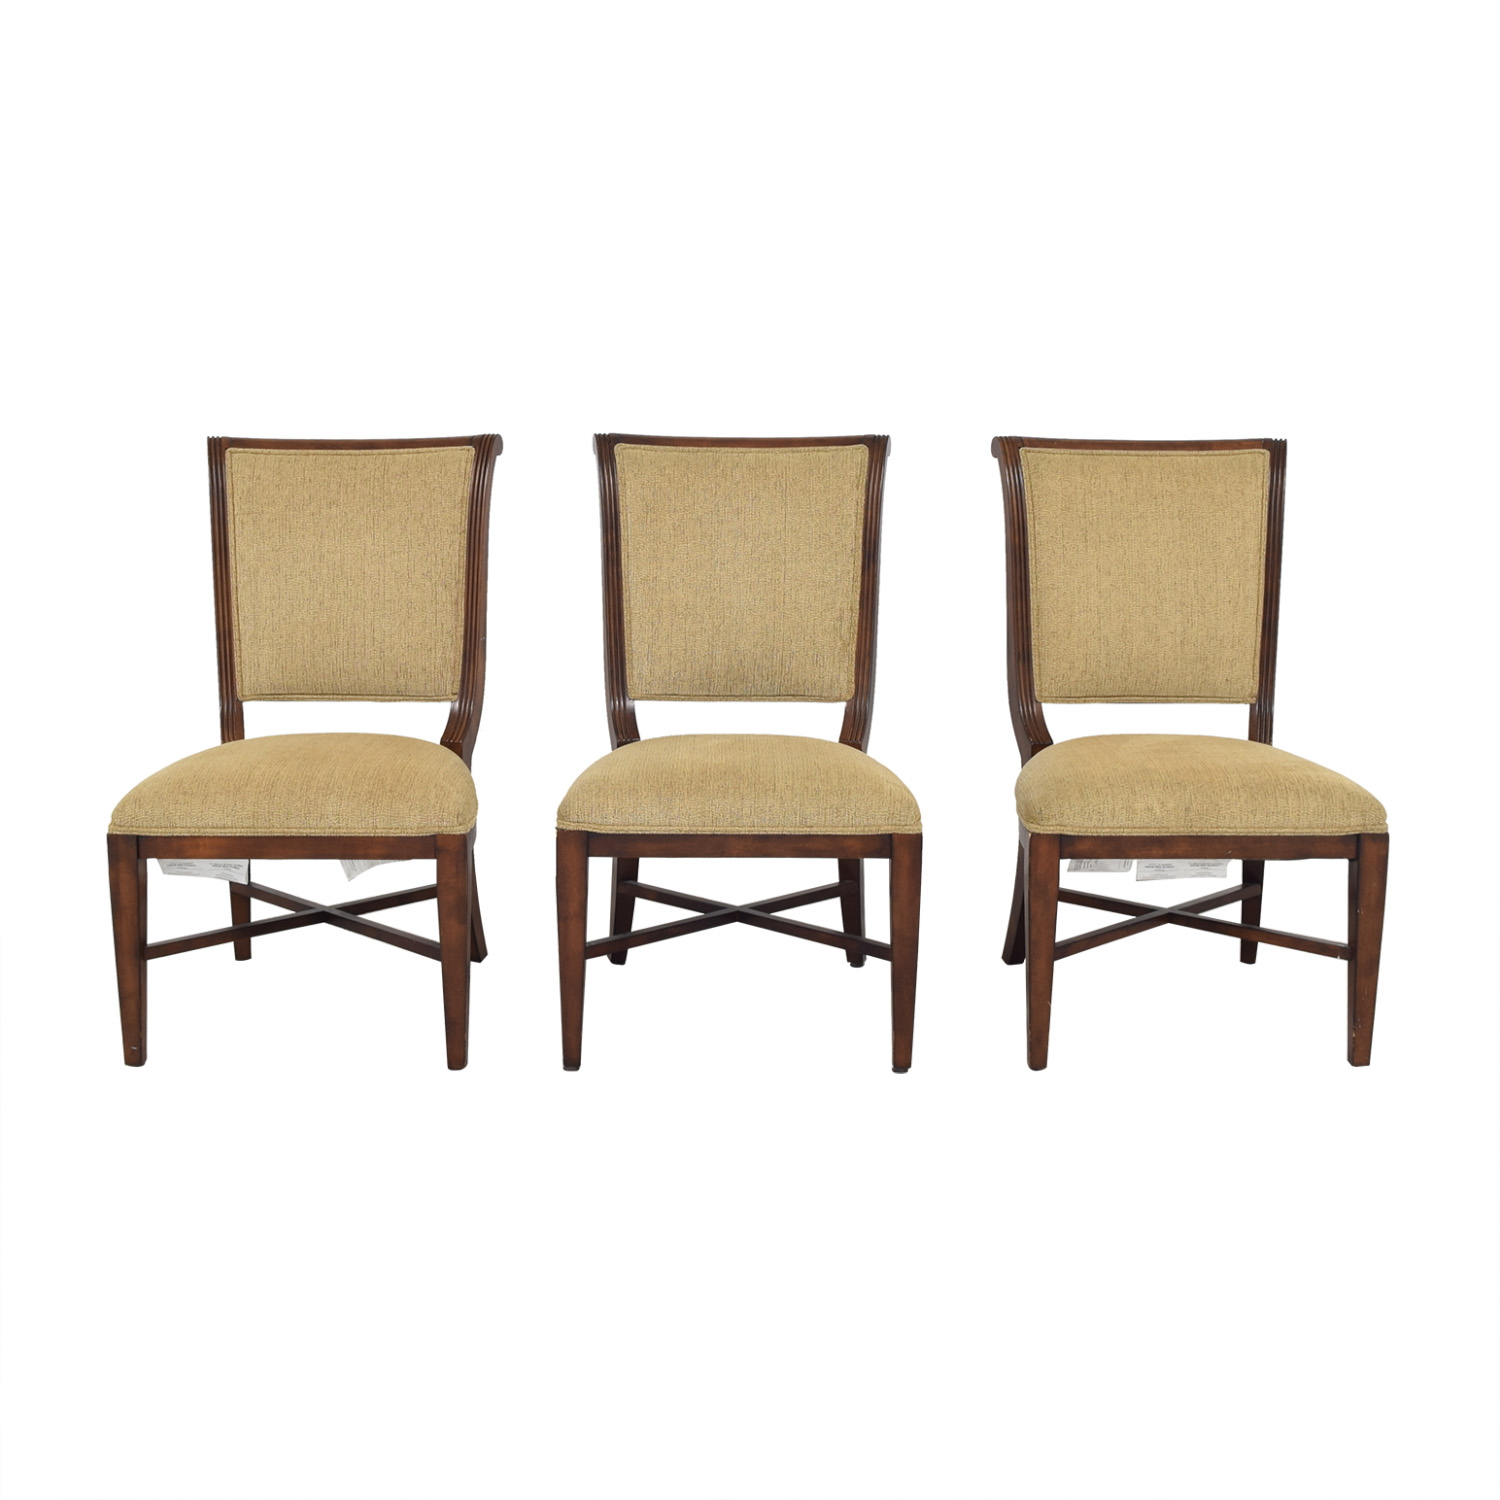 buy Lexington Furniture Lexington Furniture Upholstered Dining Chairs online